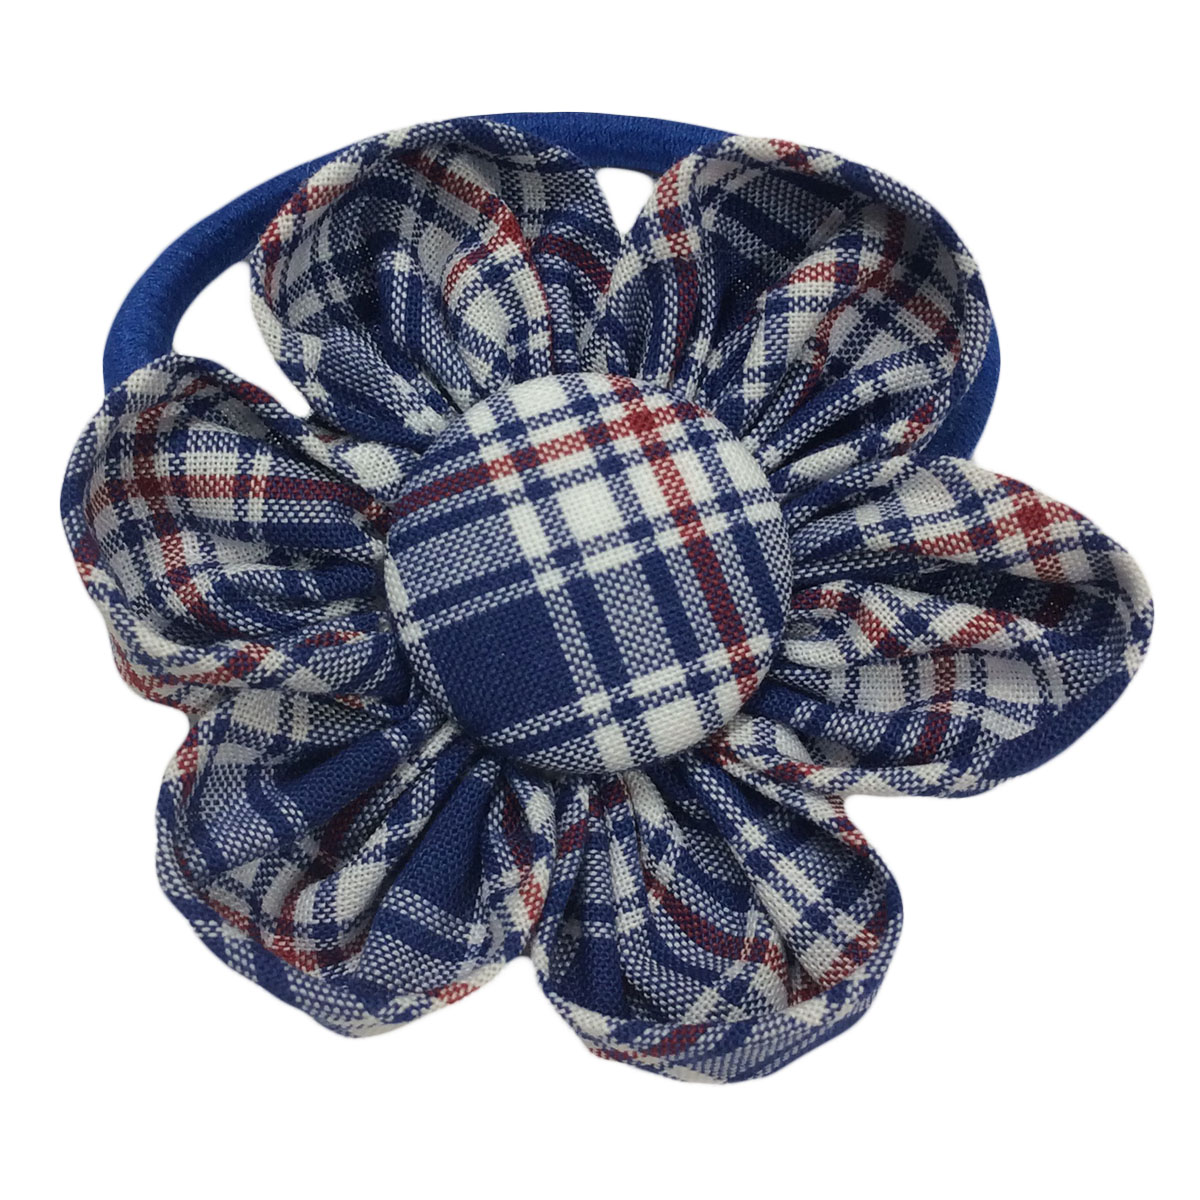 School fabric Flower Elastic Hair Tie - School Pride  b770f6db13c